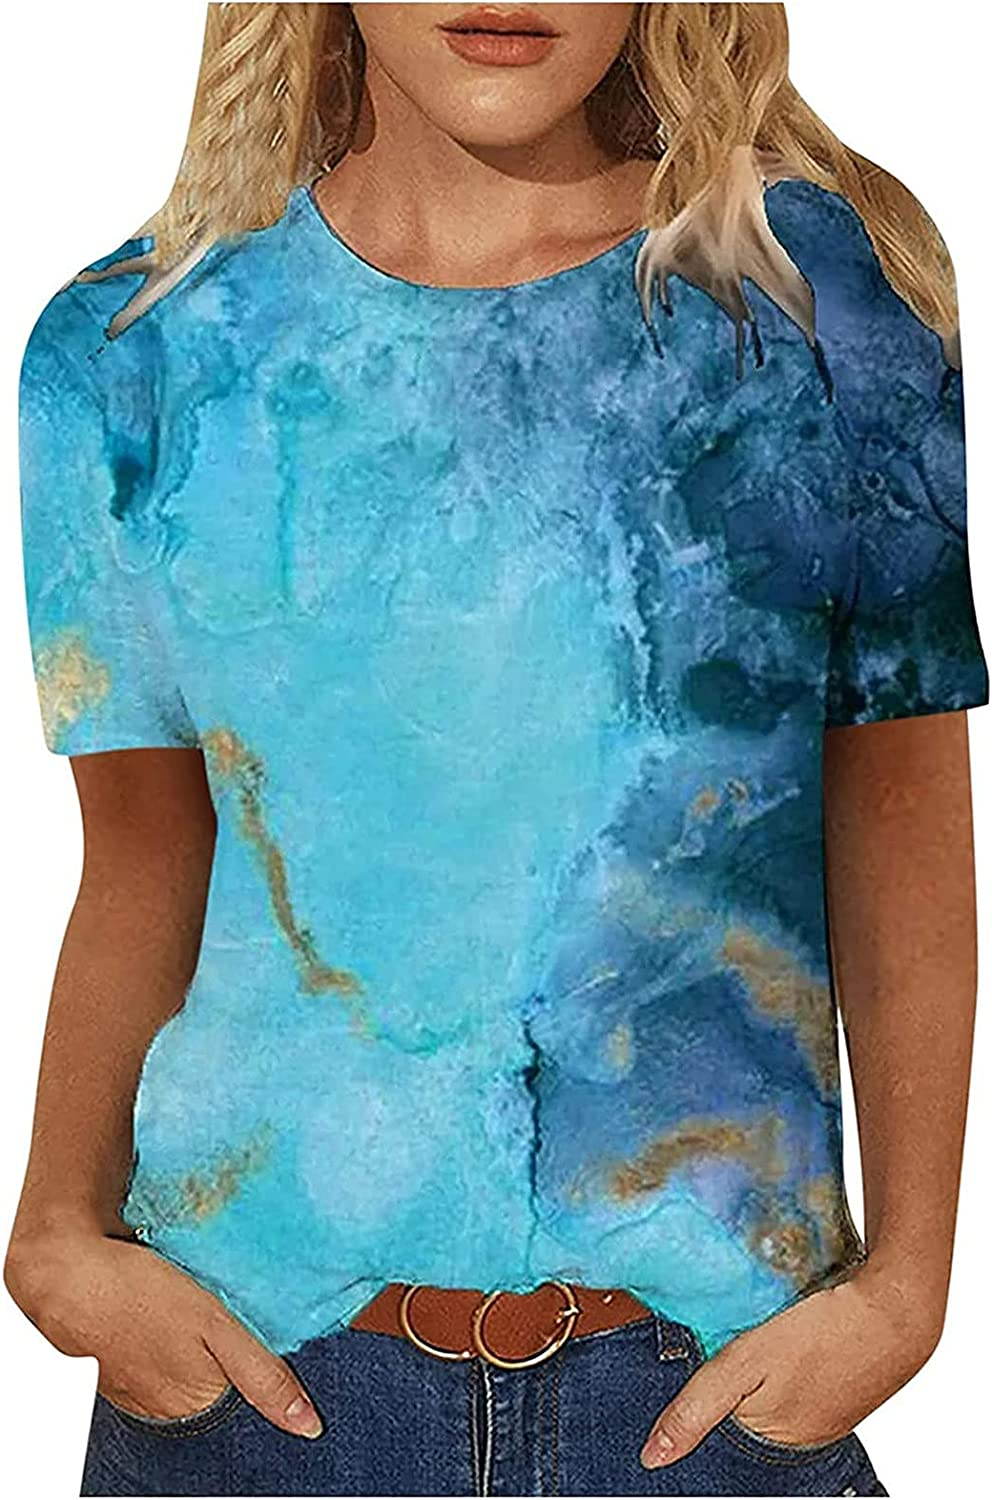 Graphic Tee Tops for Womens Retro Printing O-Neck T-Shirt Short Sleeve Casual Tee Tops Blouse